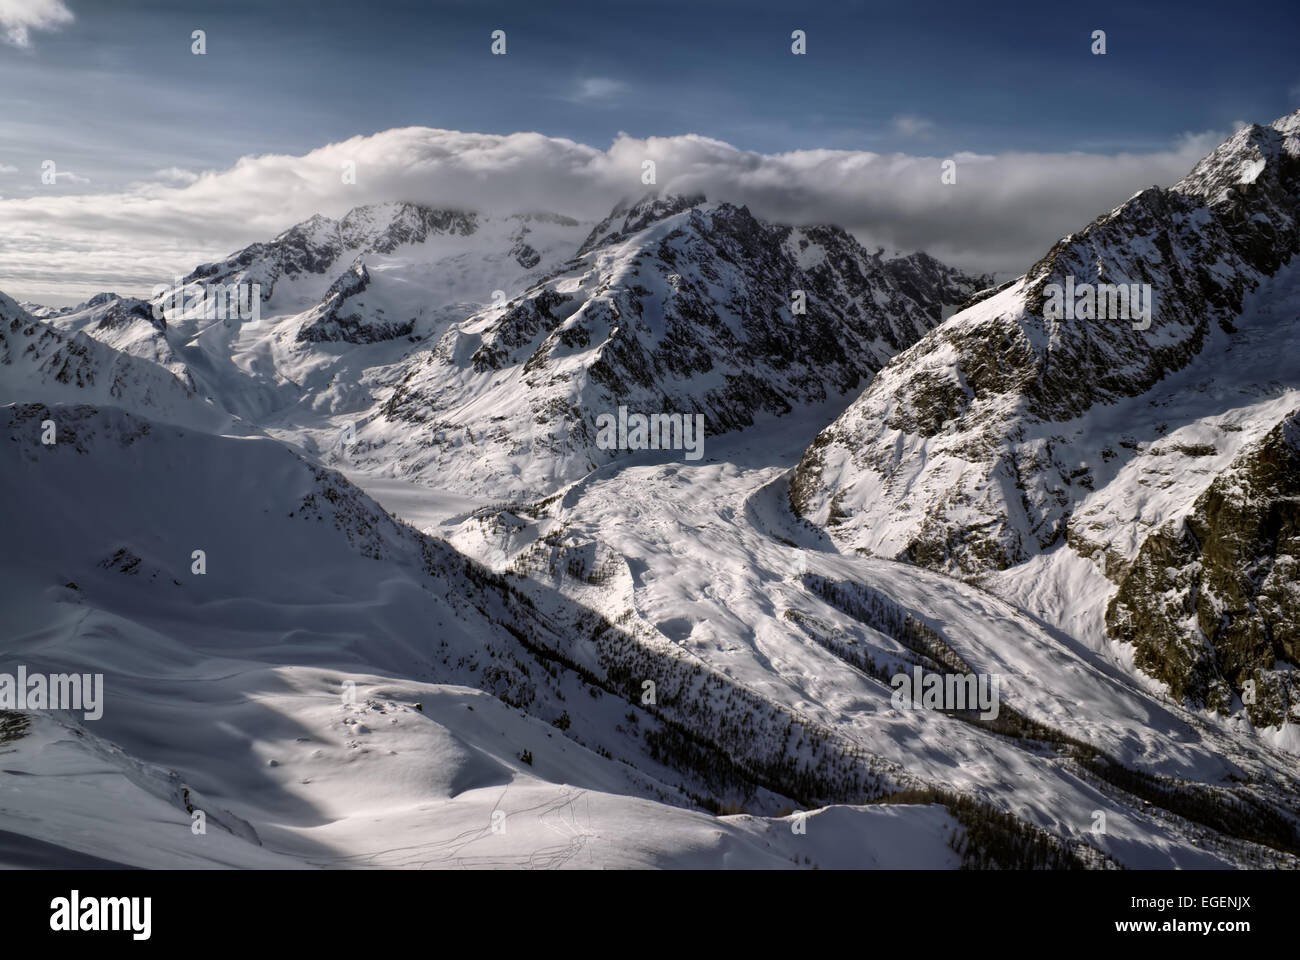 Panoramic view of ragged Mt Blanc wall during winter - Stock Image